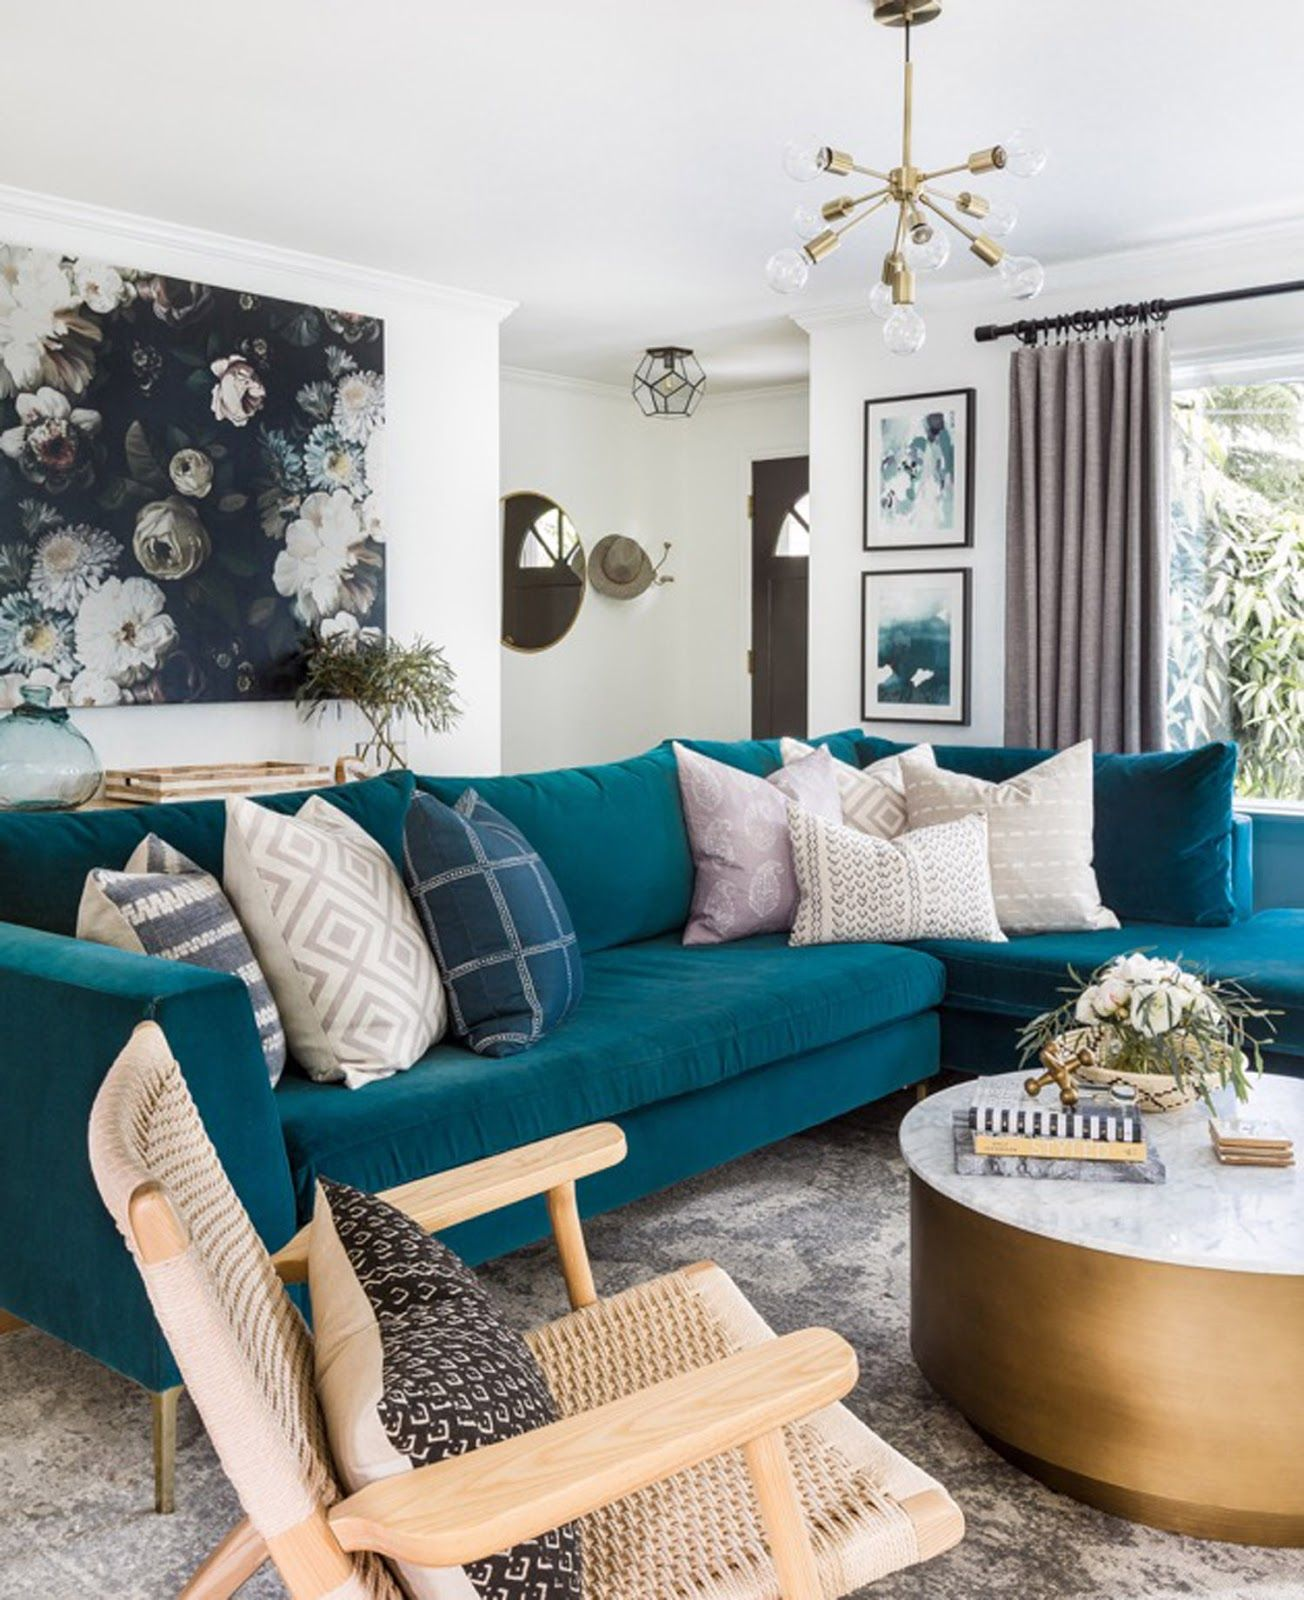 A Stylish Glam Seattle Home Tour Teal Living Room Decor Teal Living Rooms Living Room Turquoise #teal #living #room #accessories